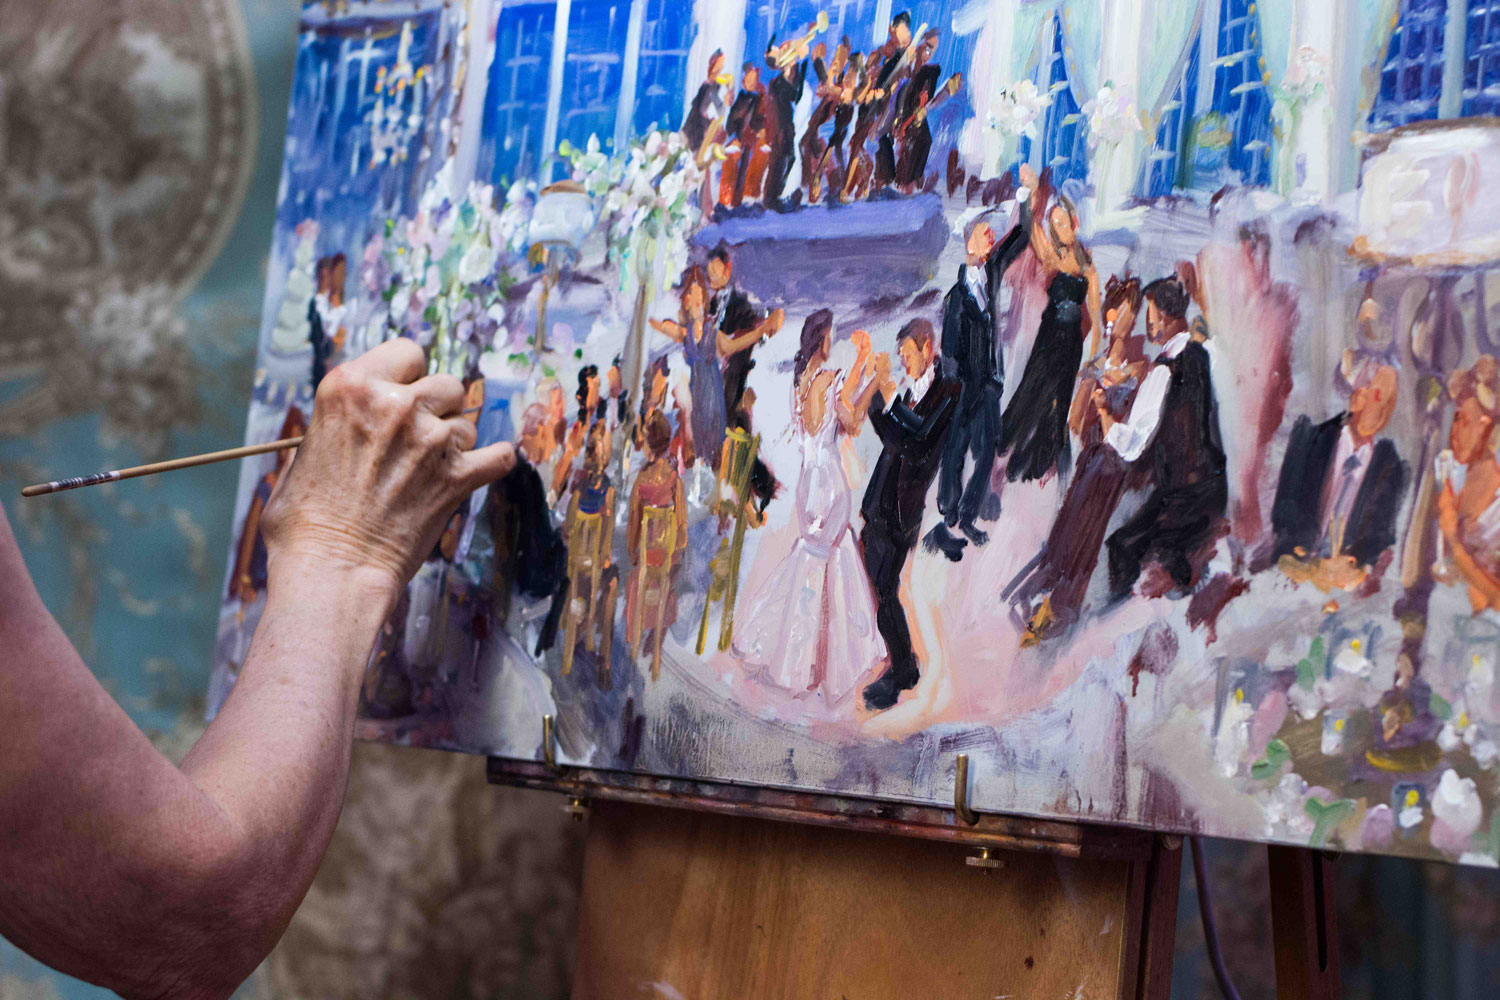 Live event painter hand painting canvas paint artwork of wedding reception first dance